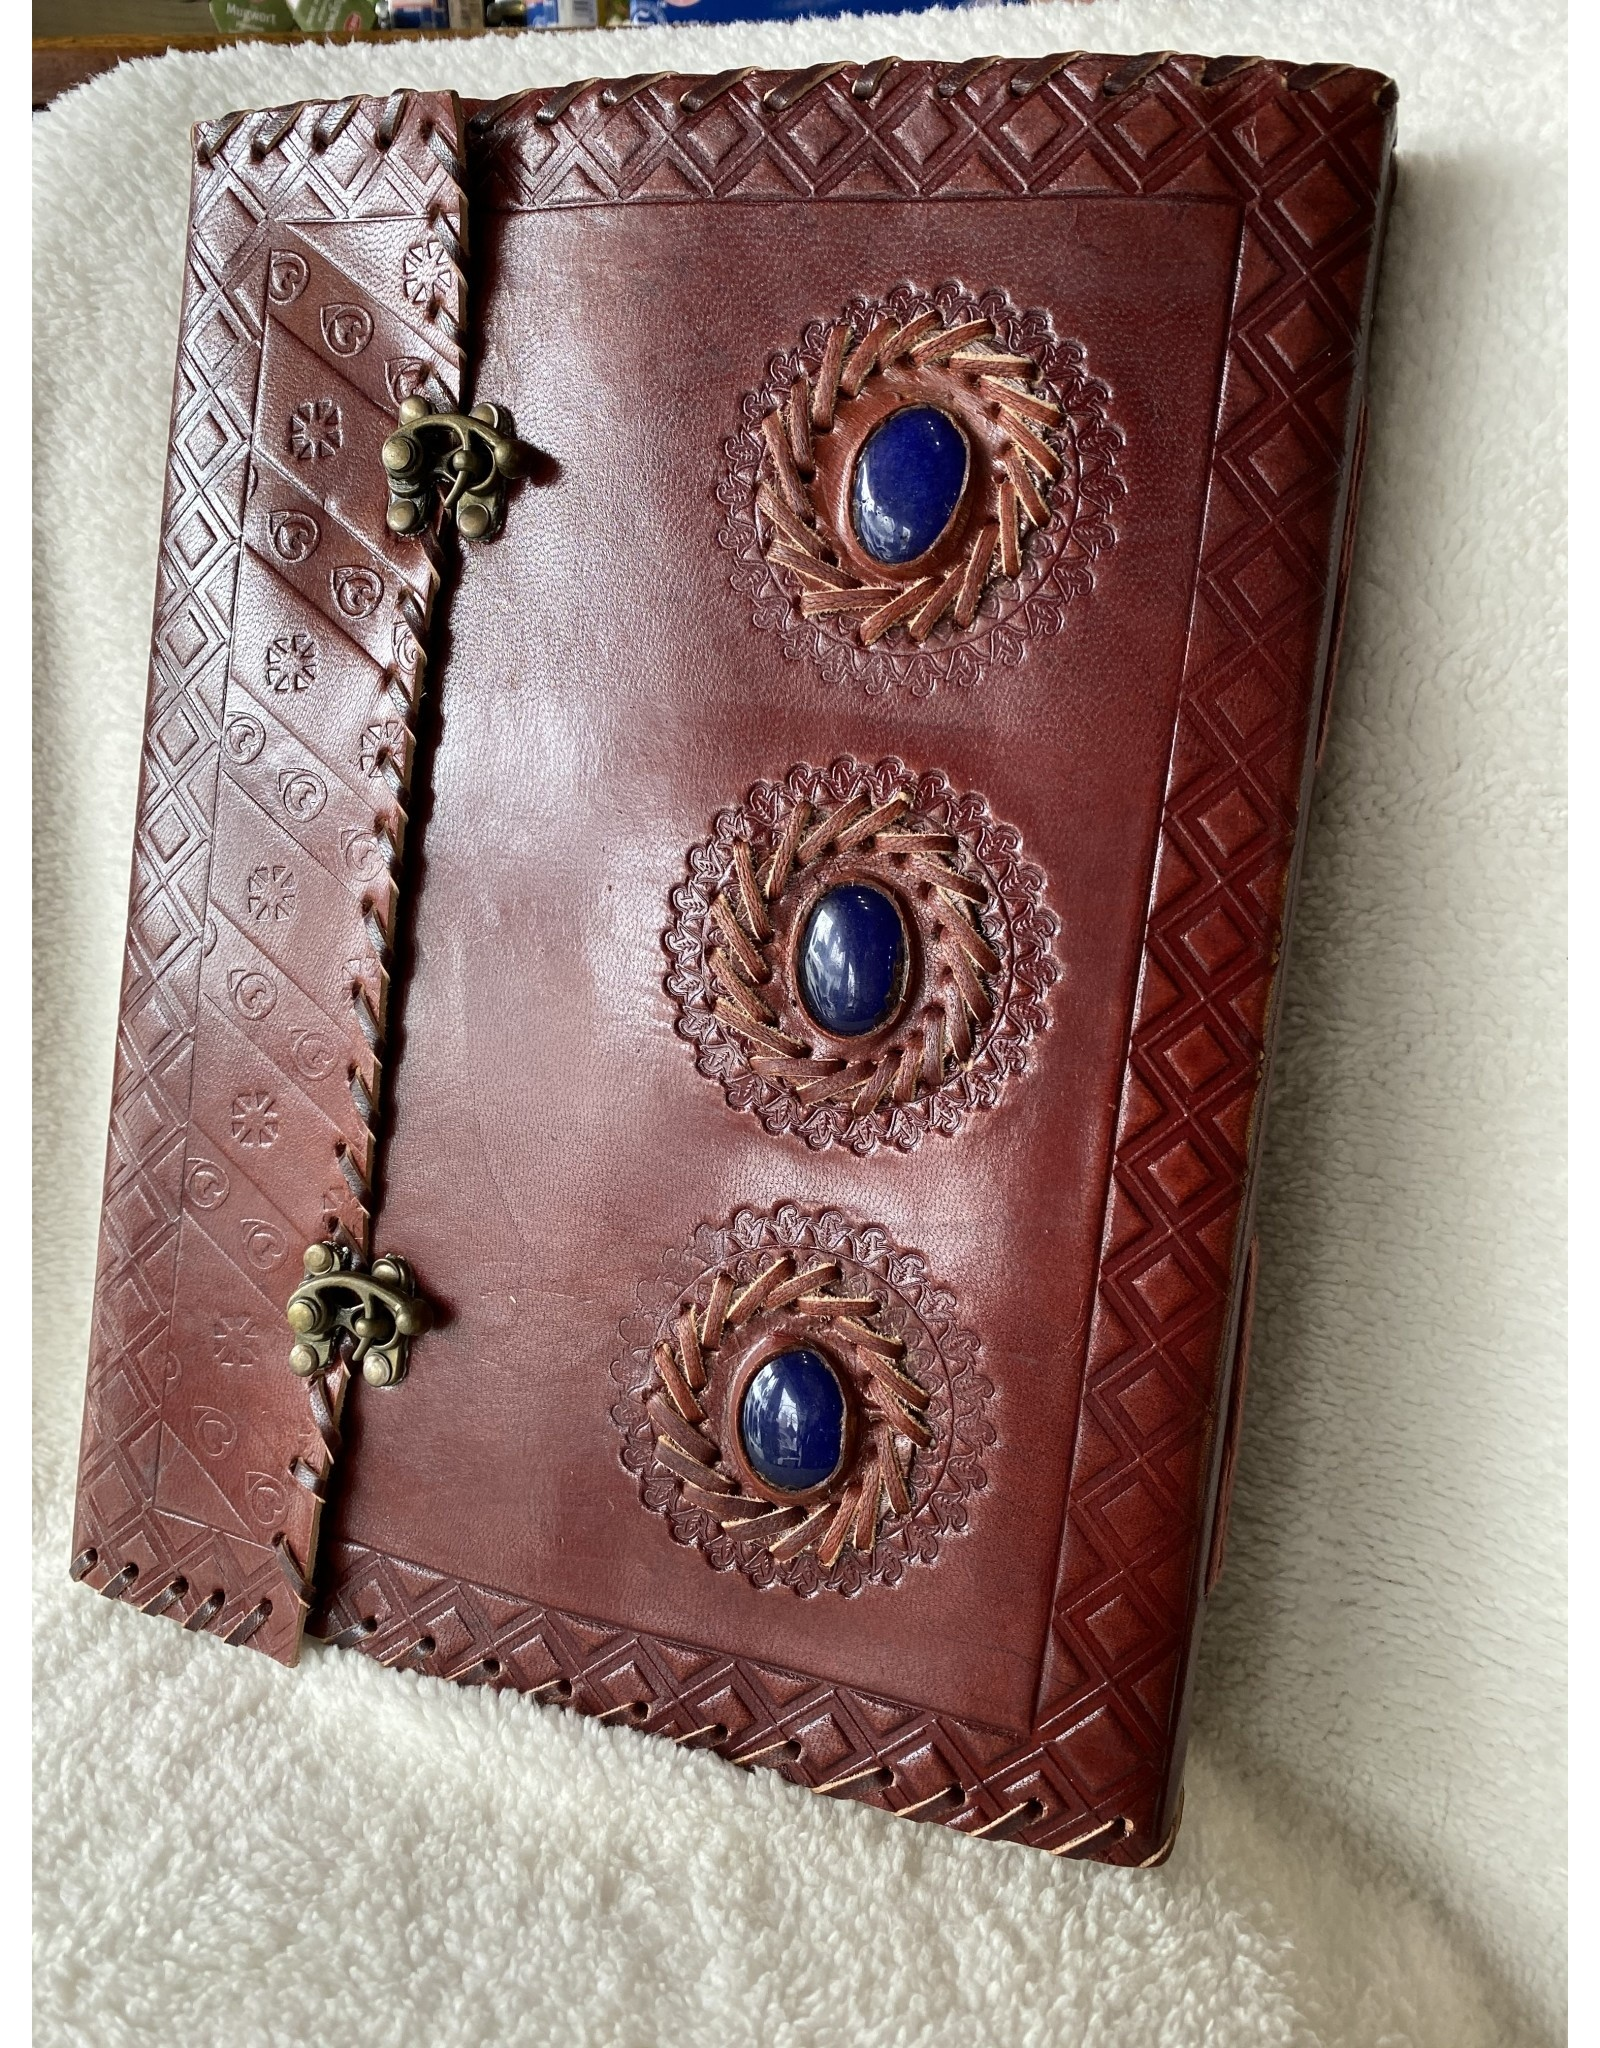 Large Leather Journal w/ Crystals